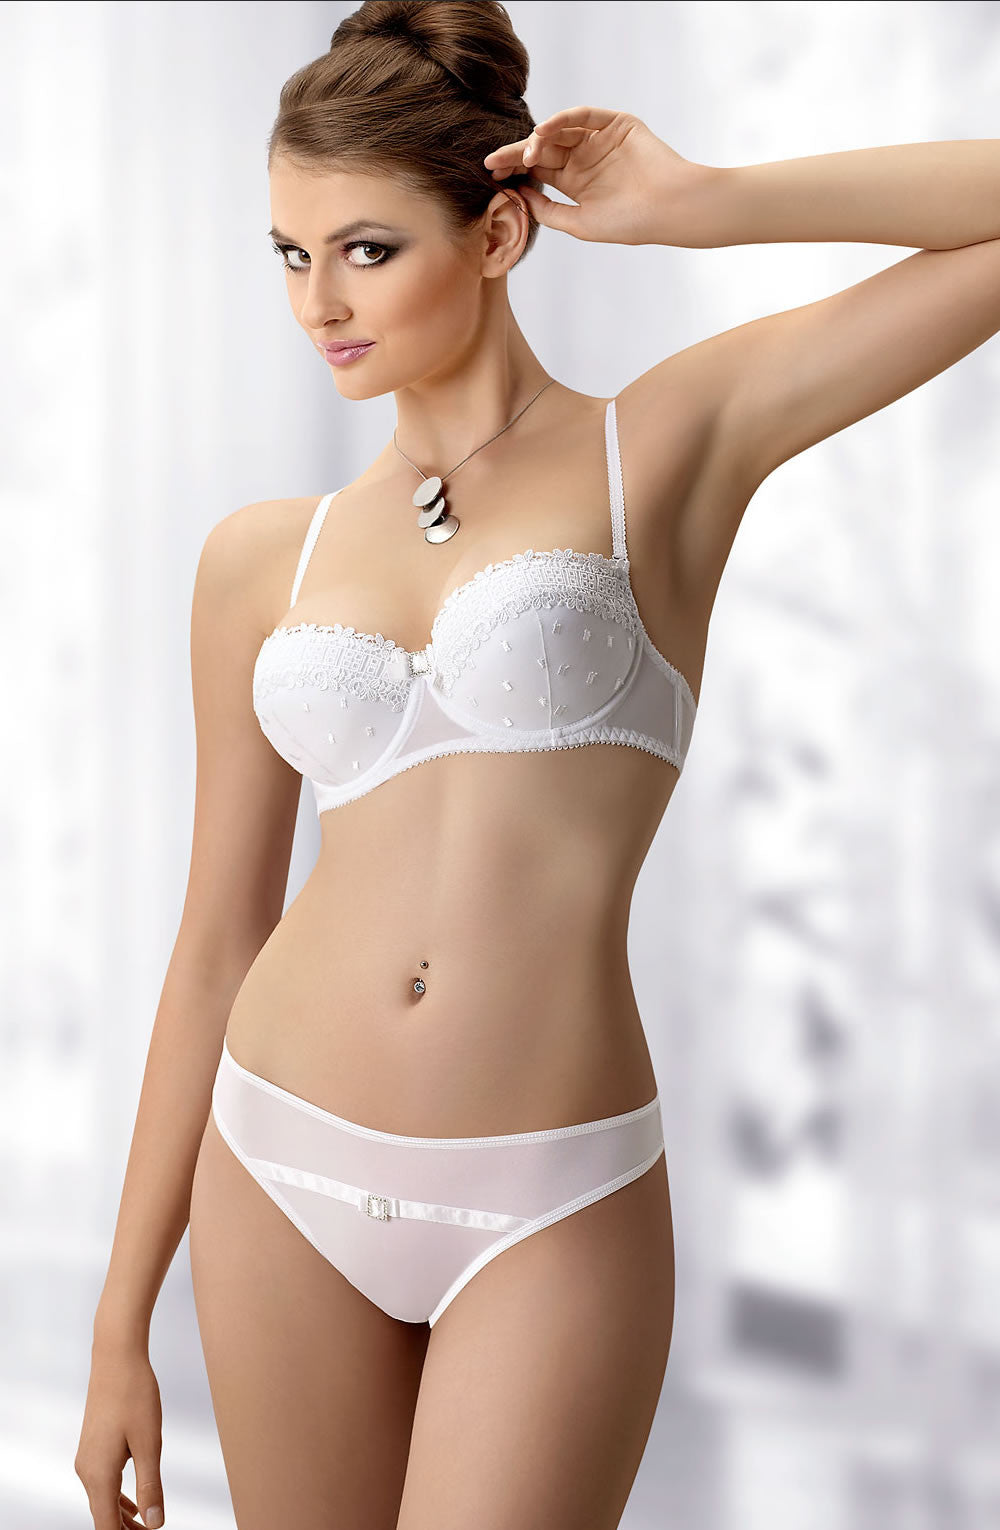 How to Choose your Bridal Lingerie? Part 1